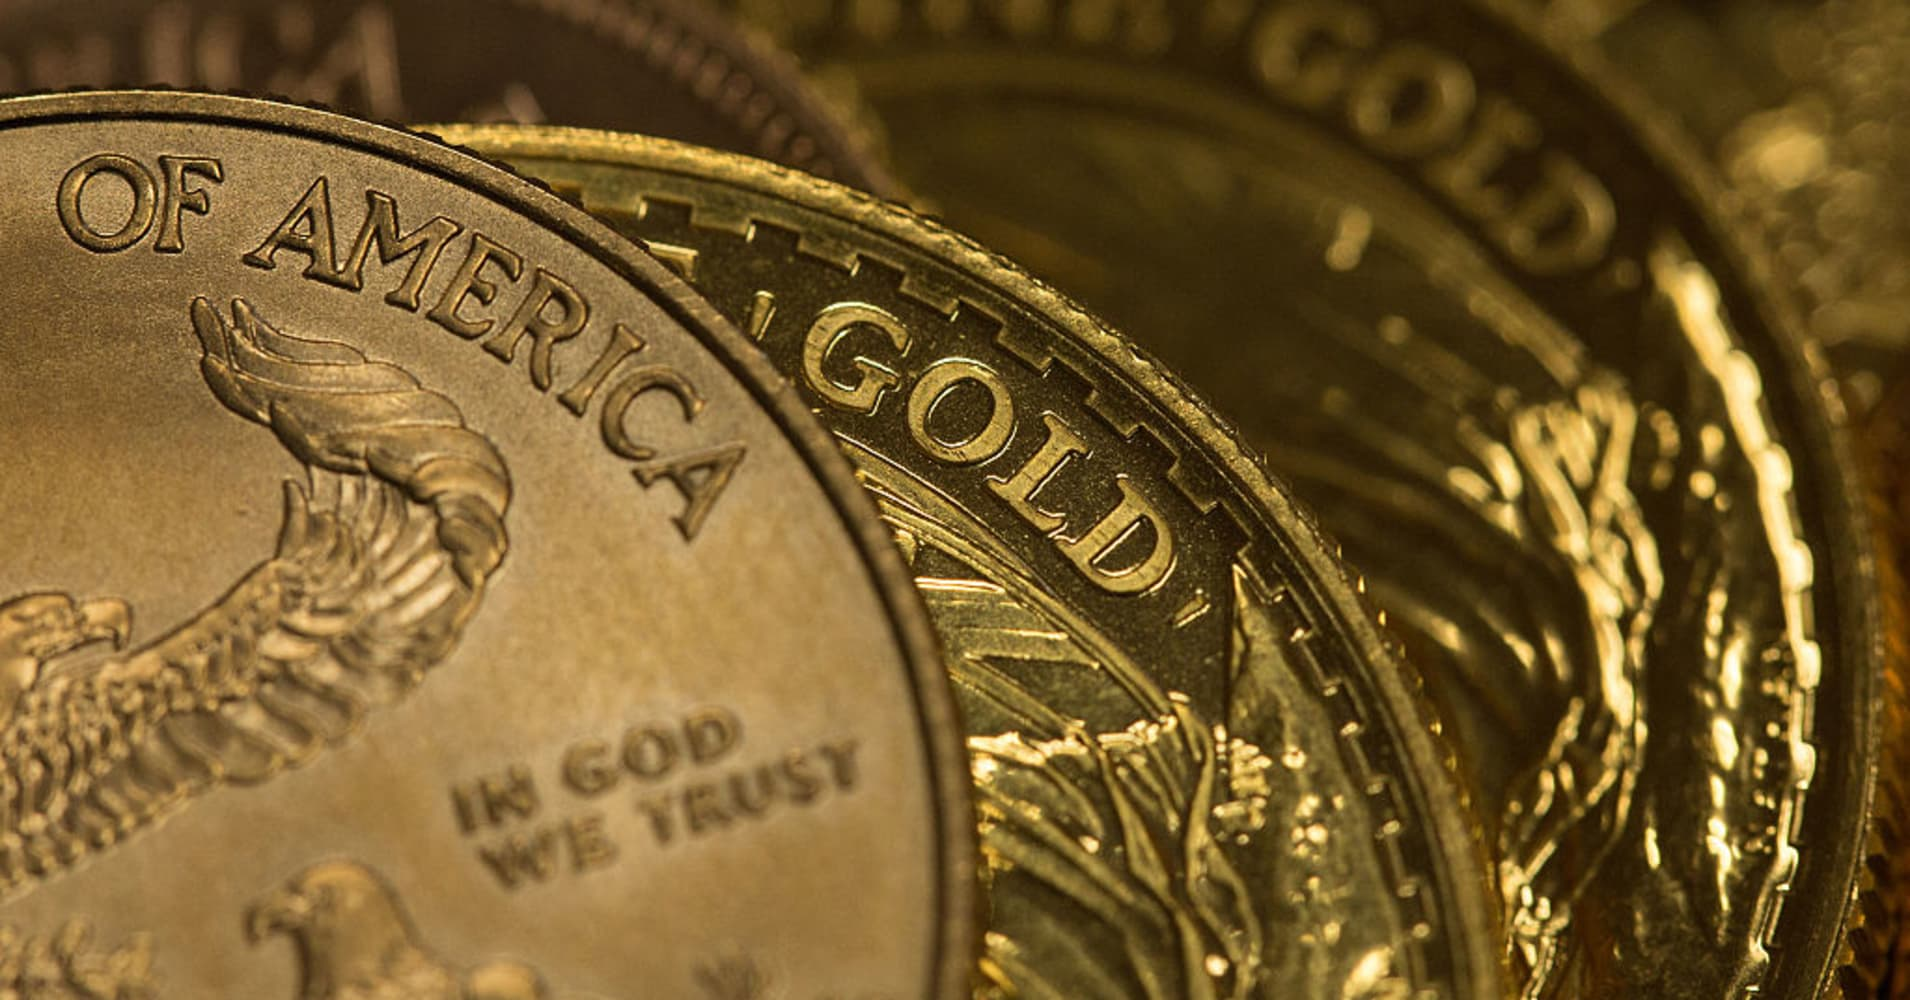 Gold nudges down as strong US data boosts rate rise view